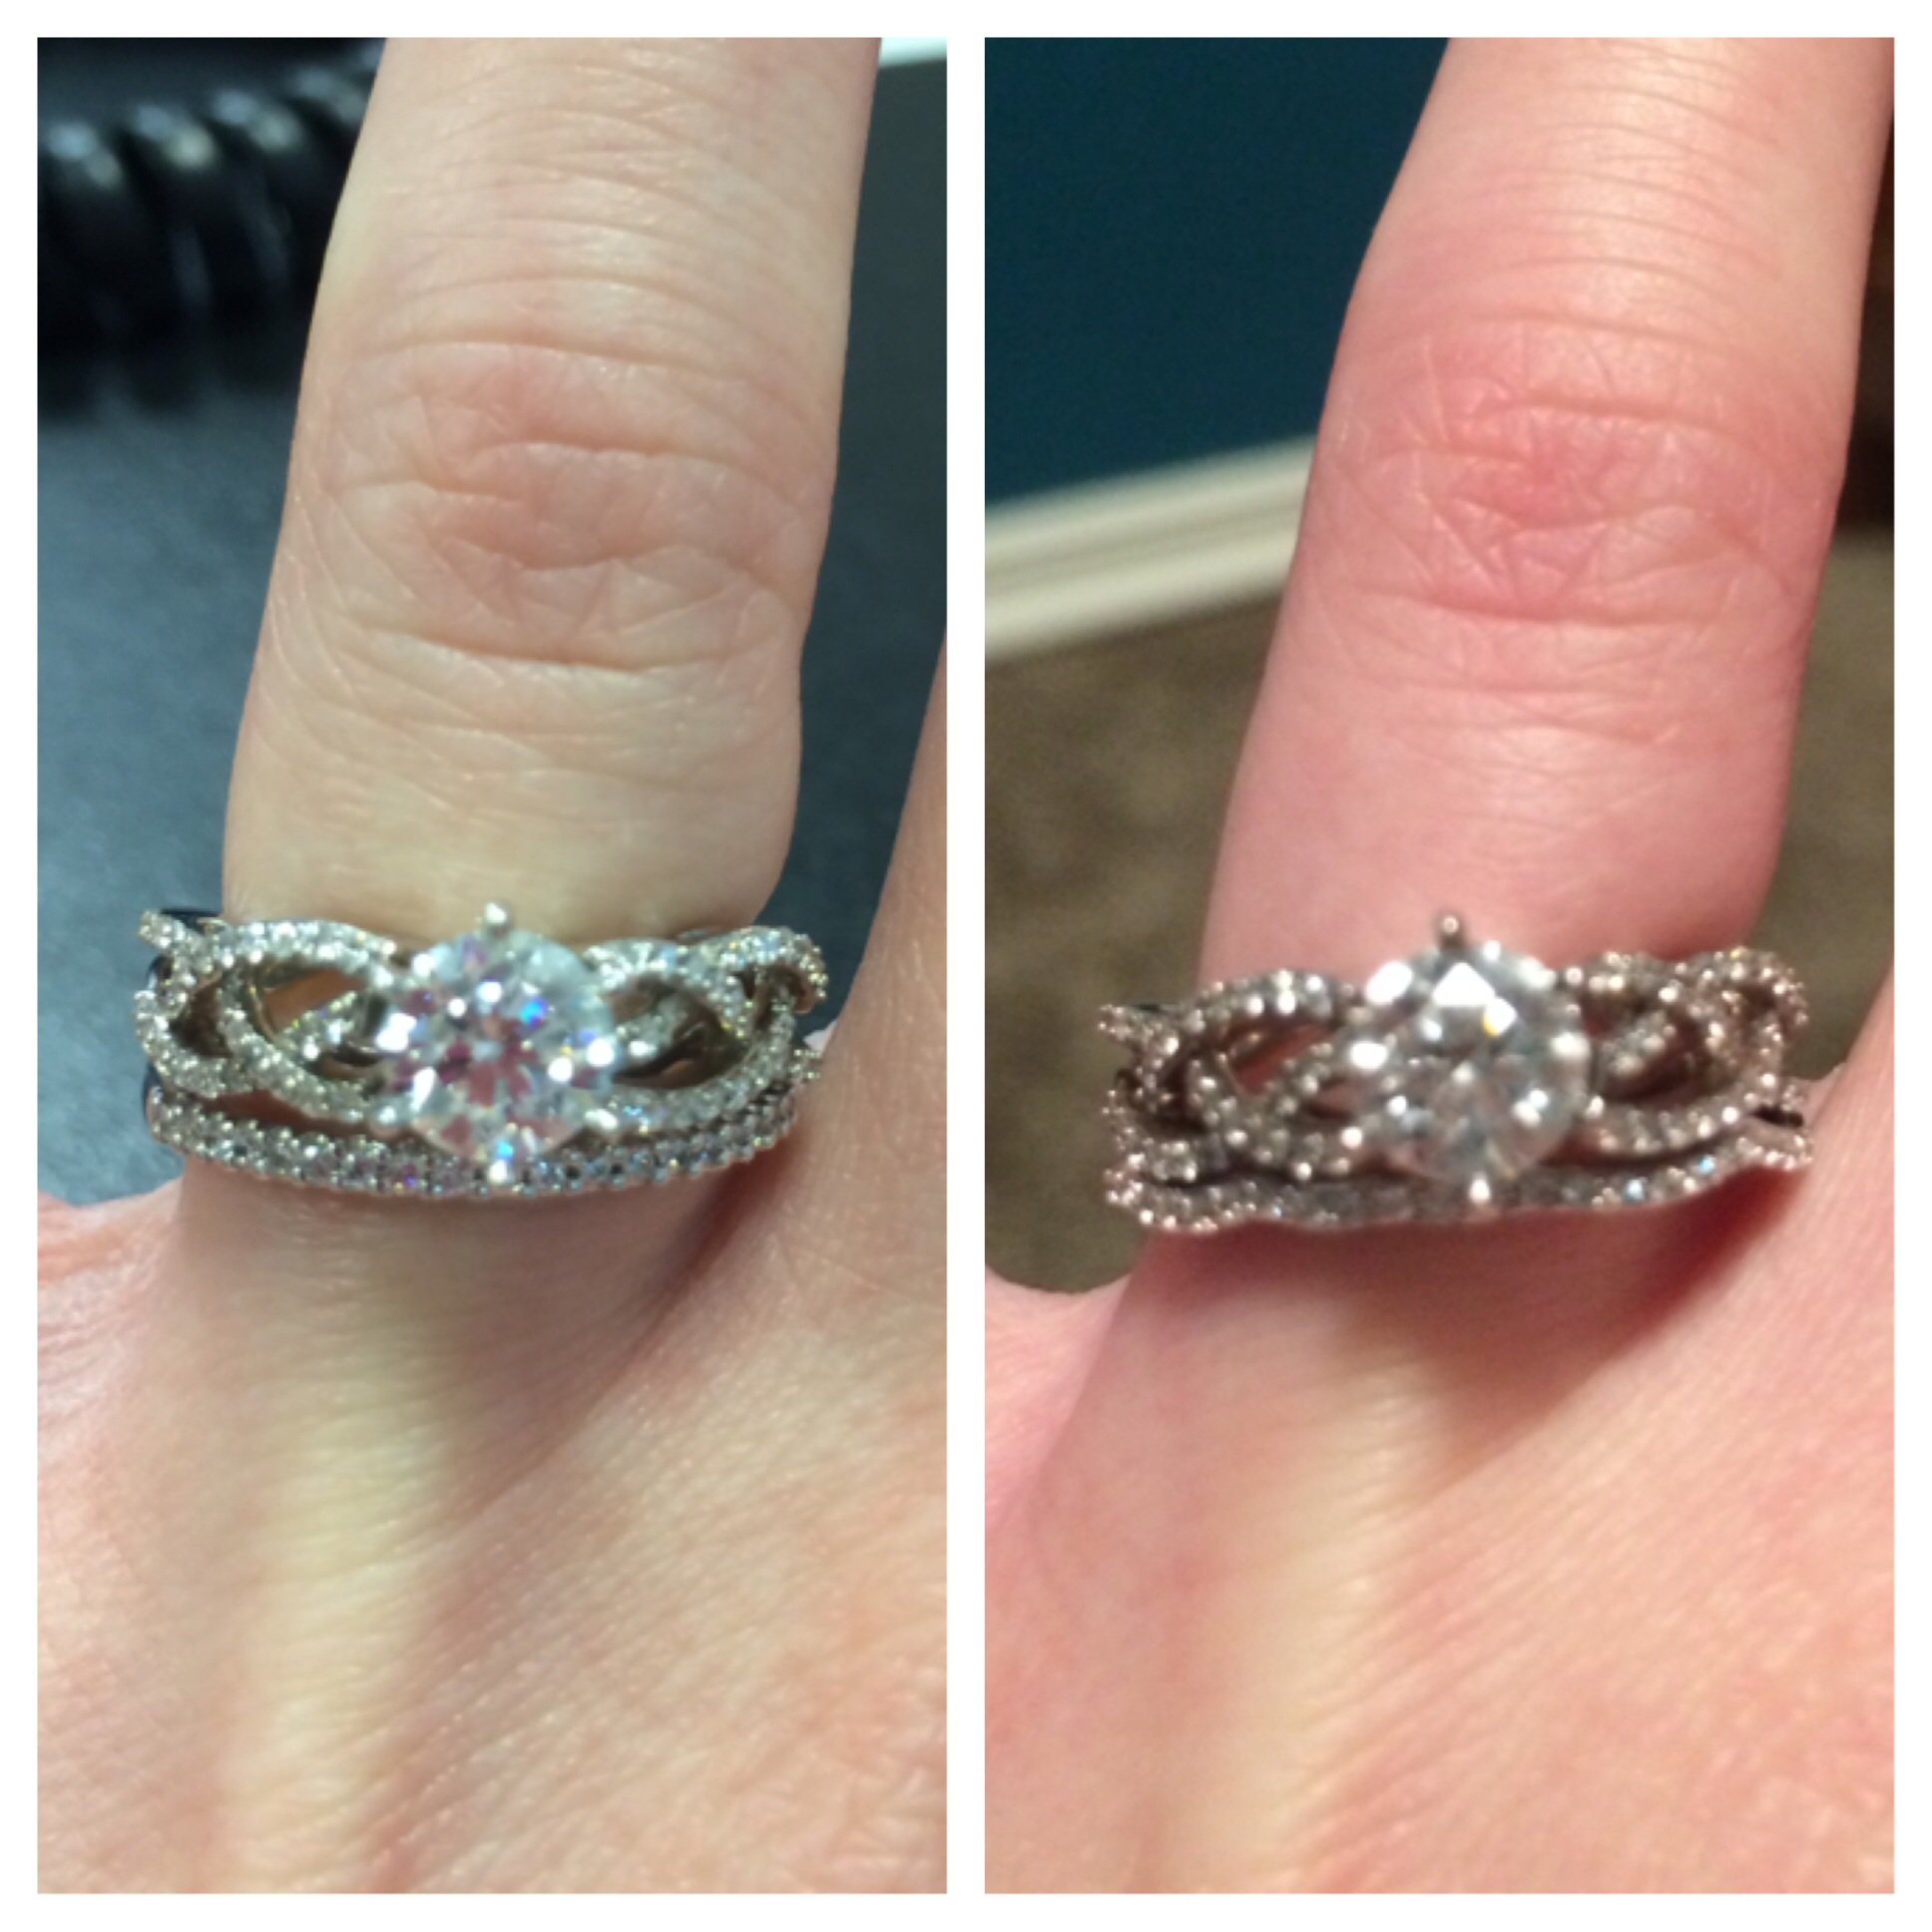 straight vs curved wedding band for braided ring wedding band curved I need your opinions on what wedding band I should get for my e ring the curved one that is part if the set or straight i like both for